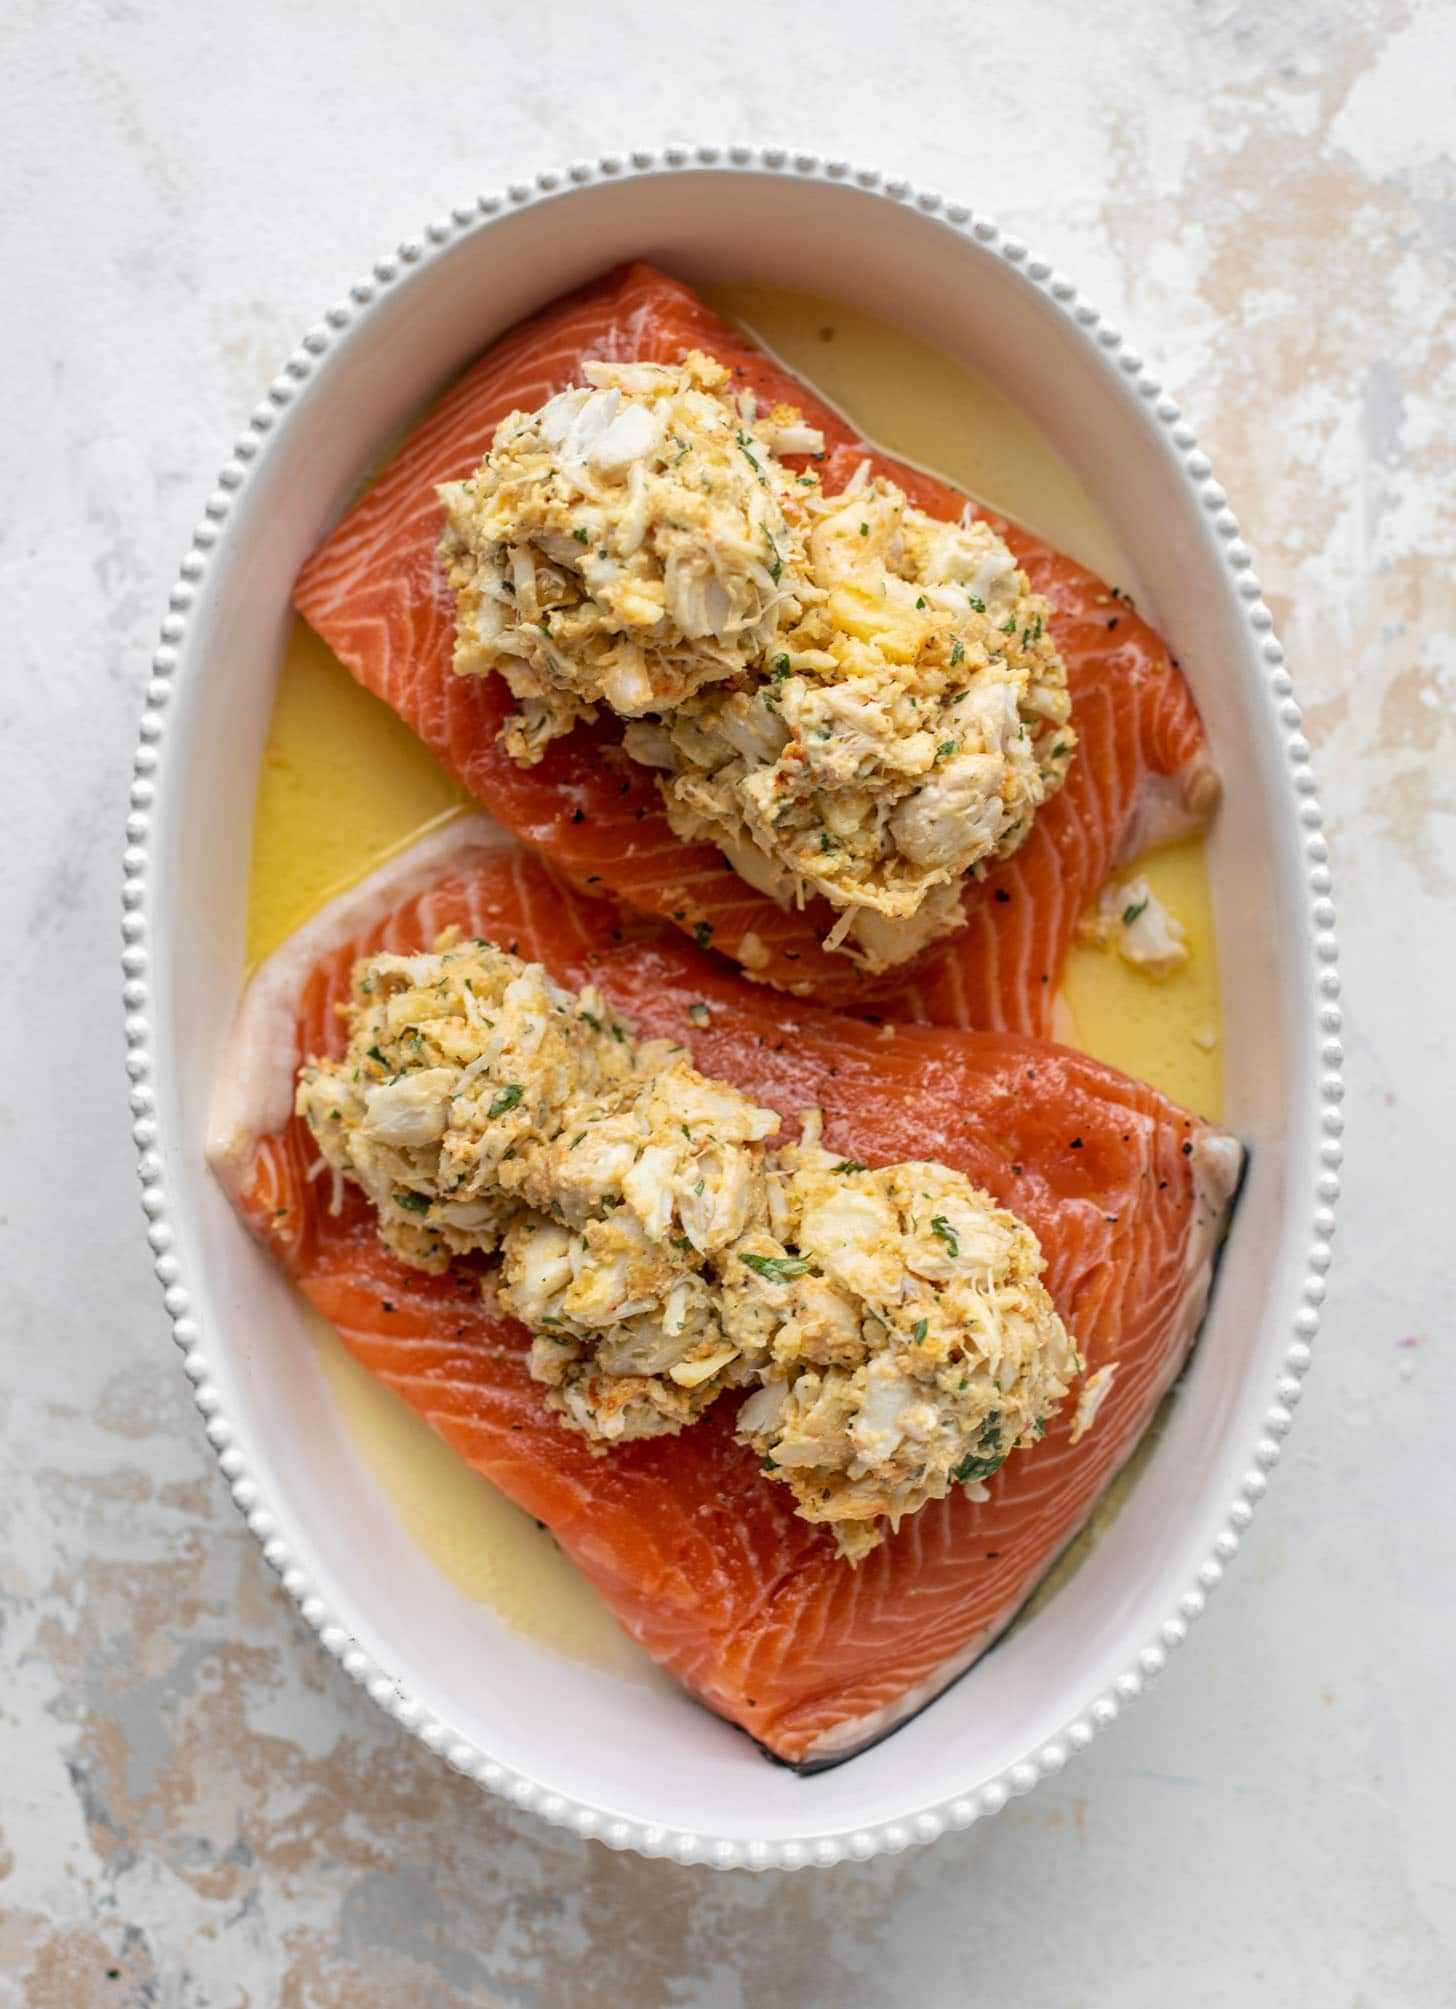 salmon in a baking dish topped with crabmeat